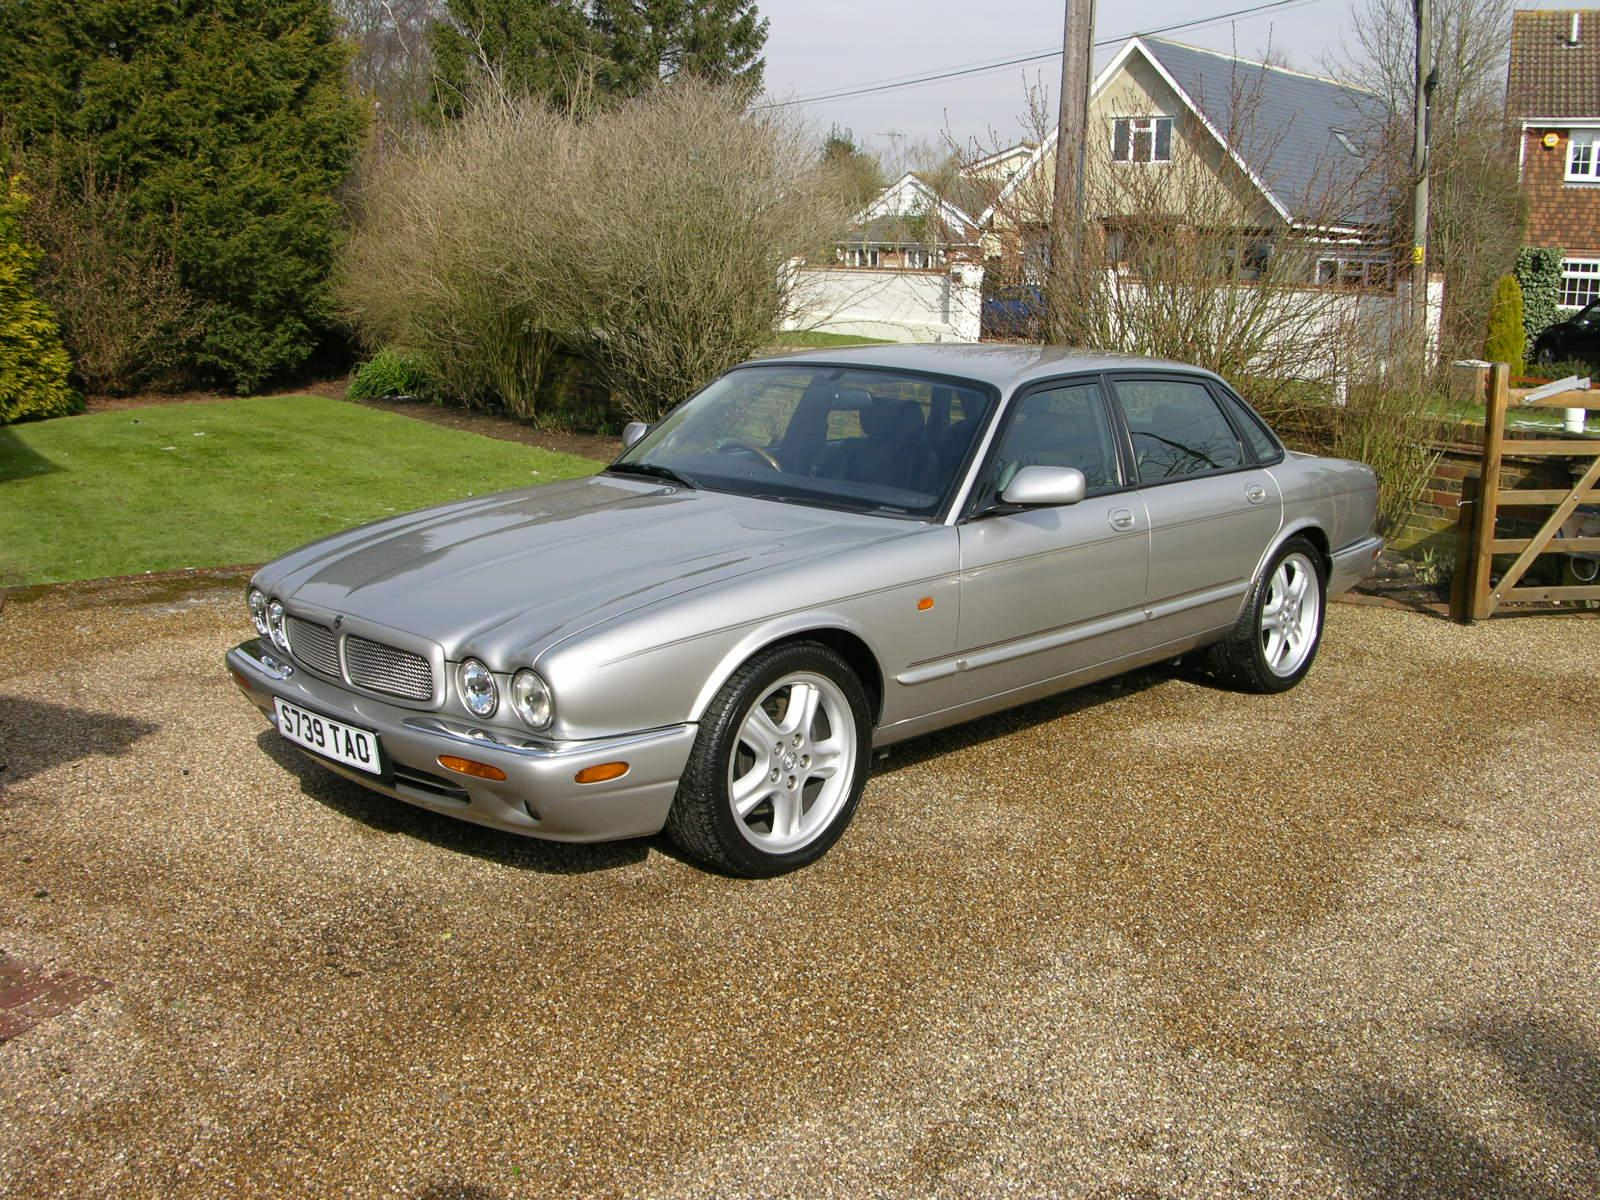 800 1024 1280 1600 Origin 1998 Jaguar Xjr